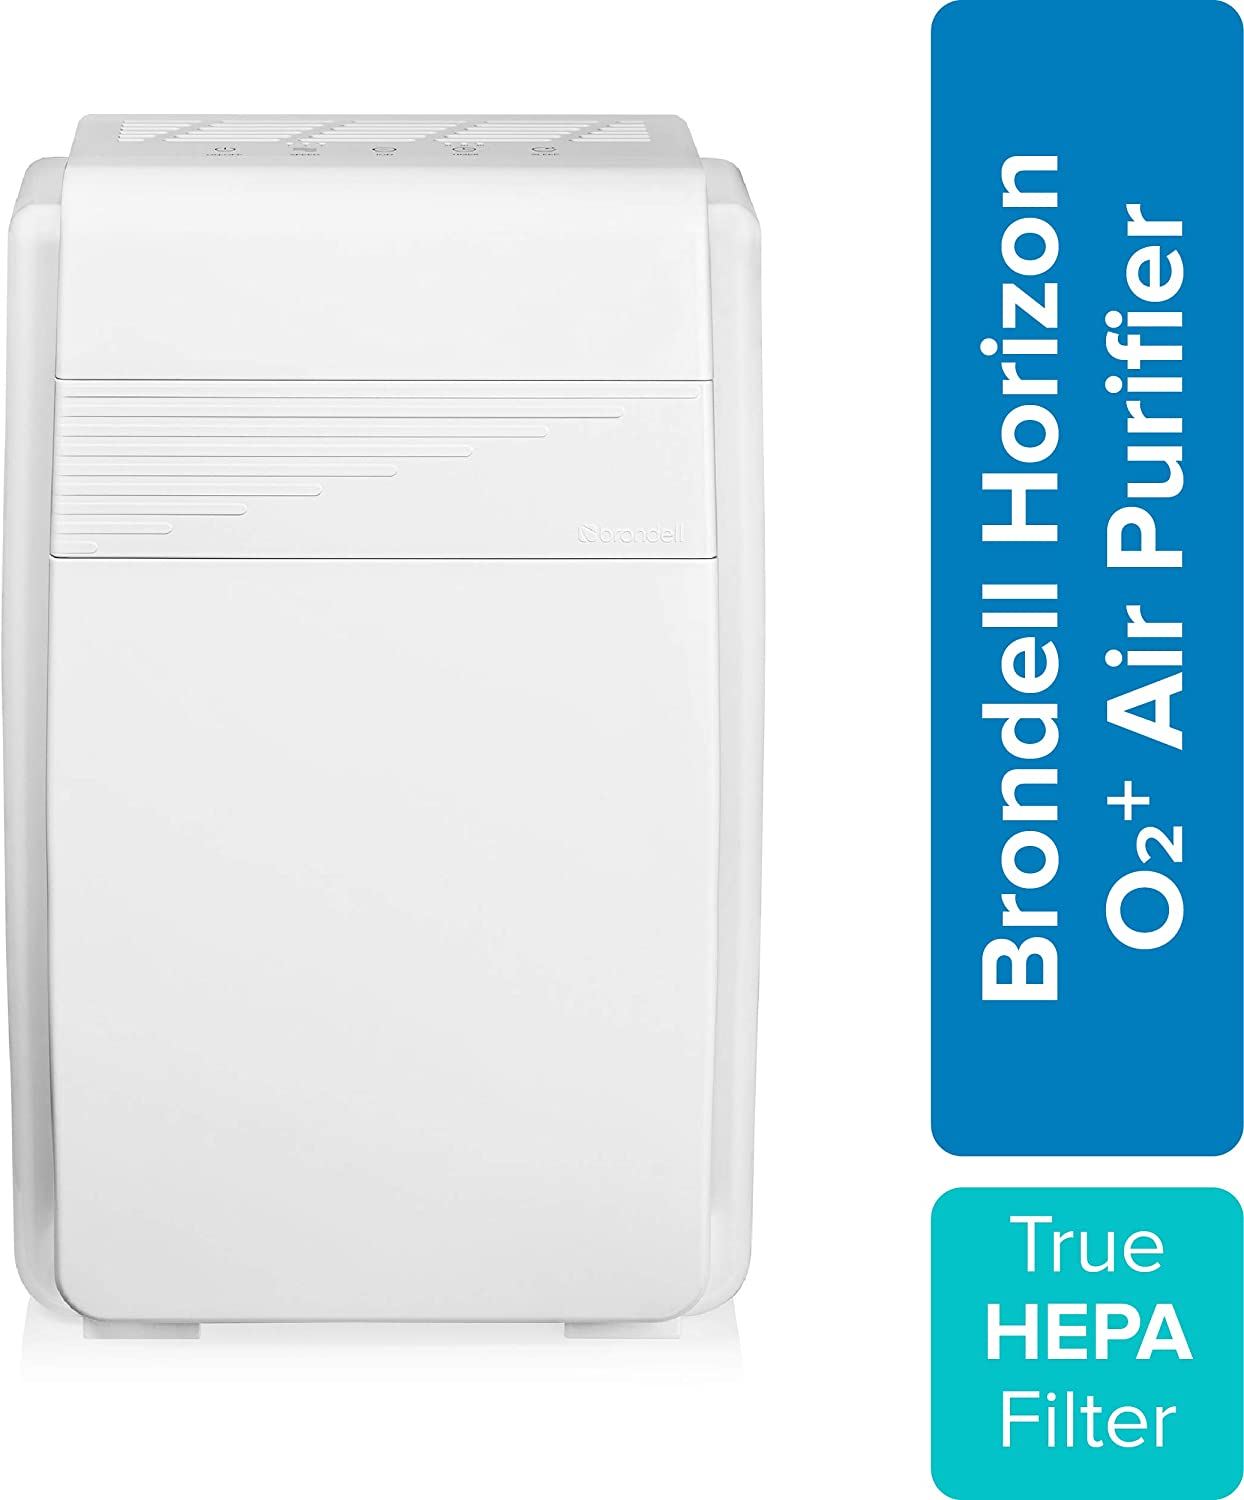 Brondell Horizon O2+ Air Purifier P200, 5 Stage Filtration System with True HEPA Filter and Intelligent Ion Technology – Dust, Mold, Smoke, and Allergy Relief, 560sf - CARB Certified